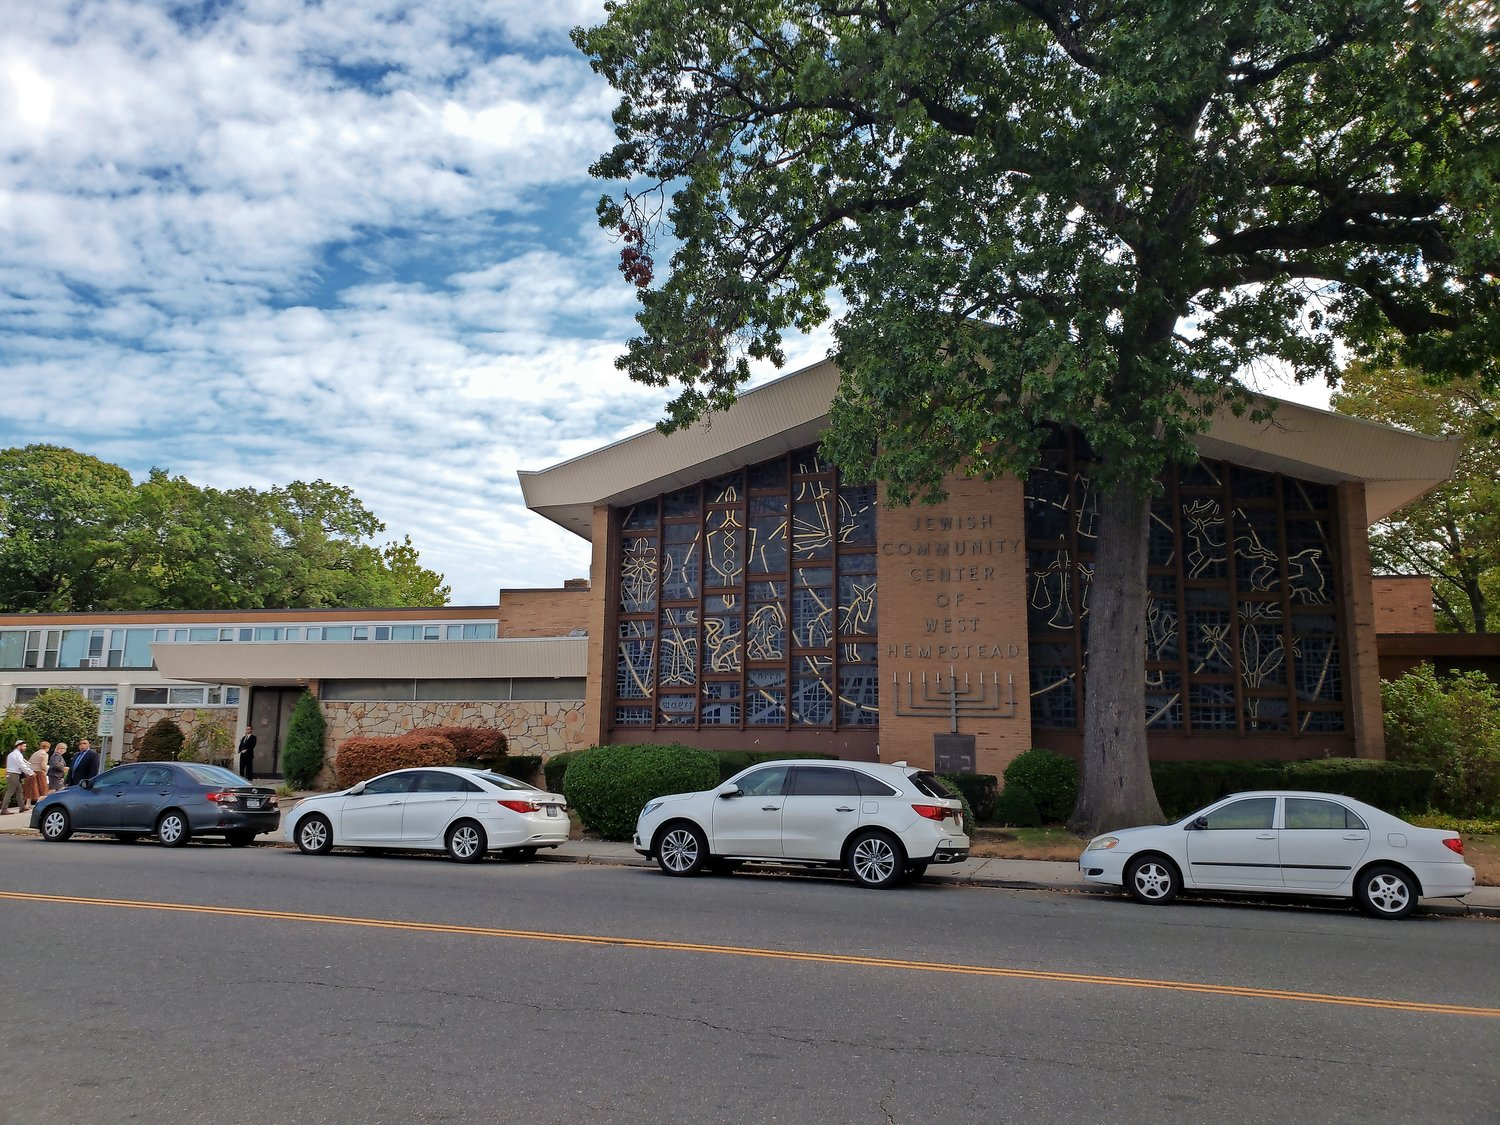 The Congregation Shaaray Shalom building in West Hempstead has housed the Temple B'Nai Israel congregation since December.